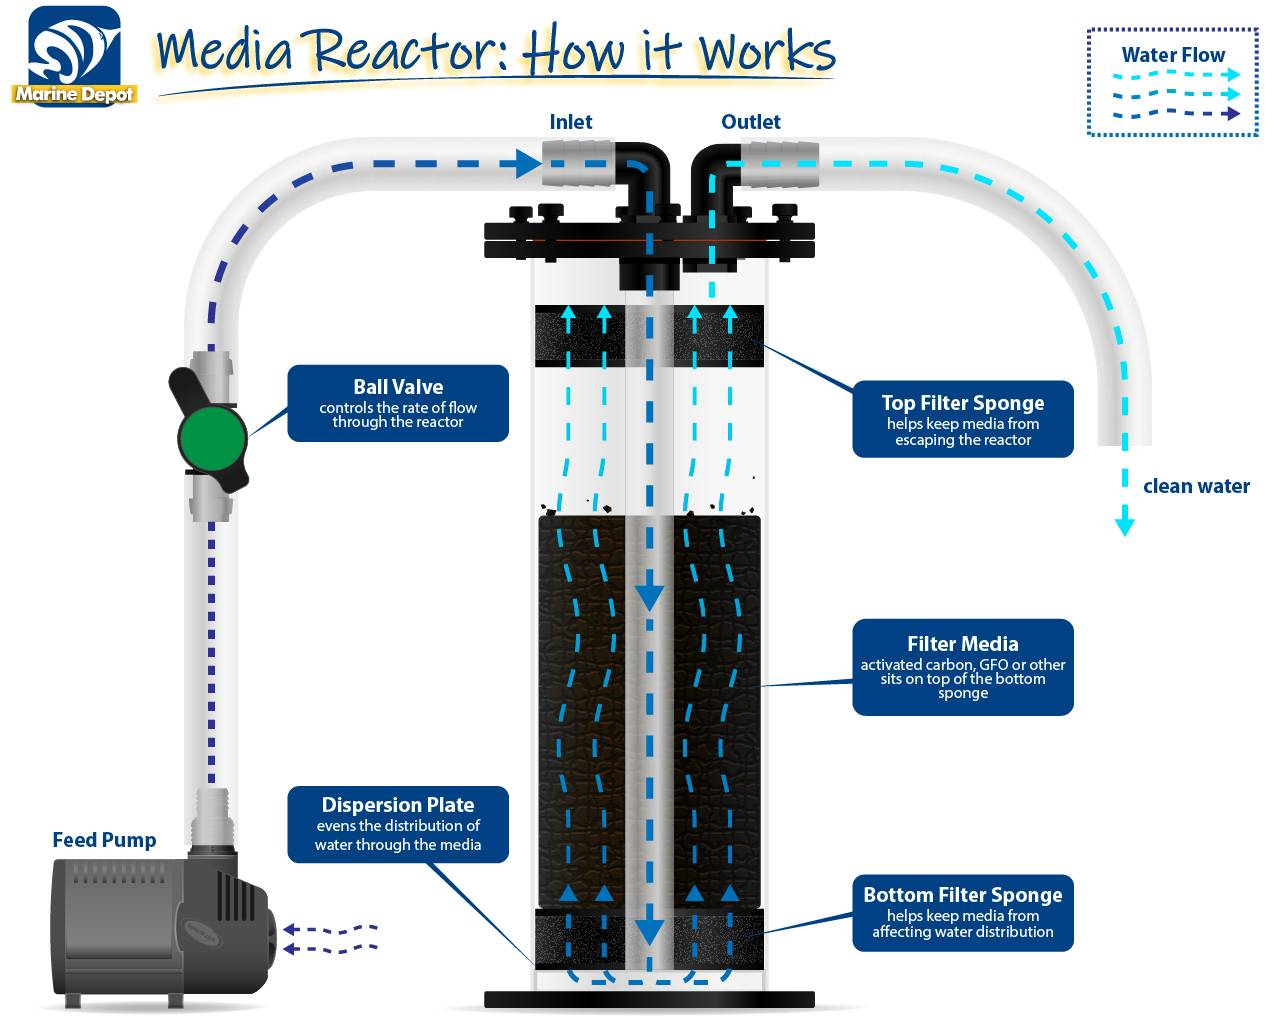 Diagram of how a media reactor typically works: feed pump, ball valve, reactor, and media